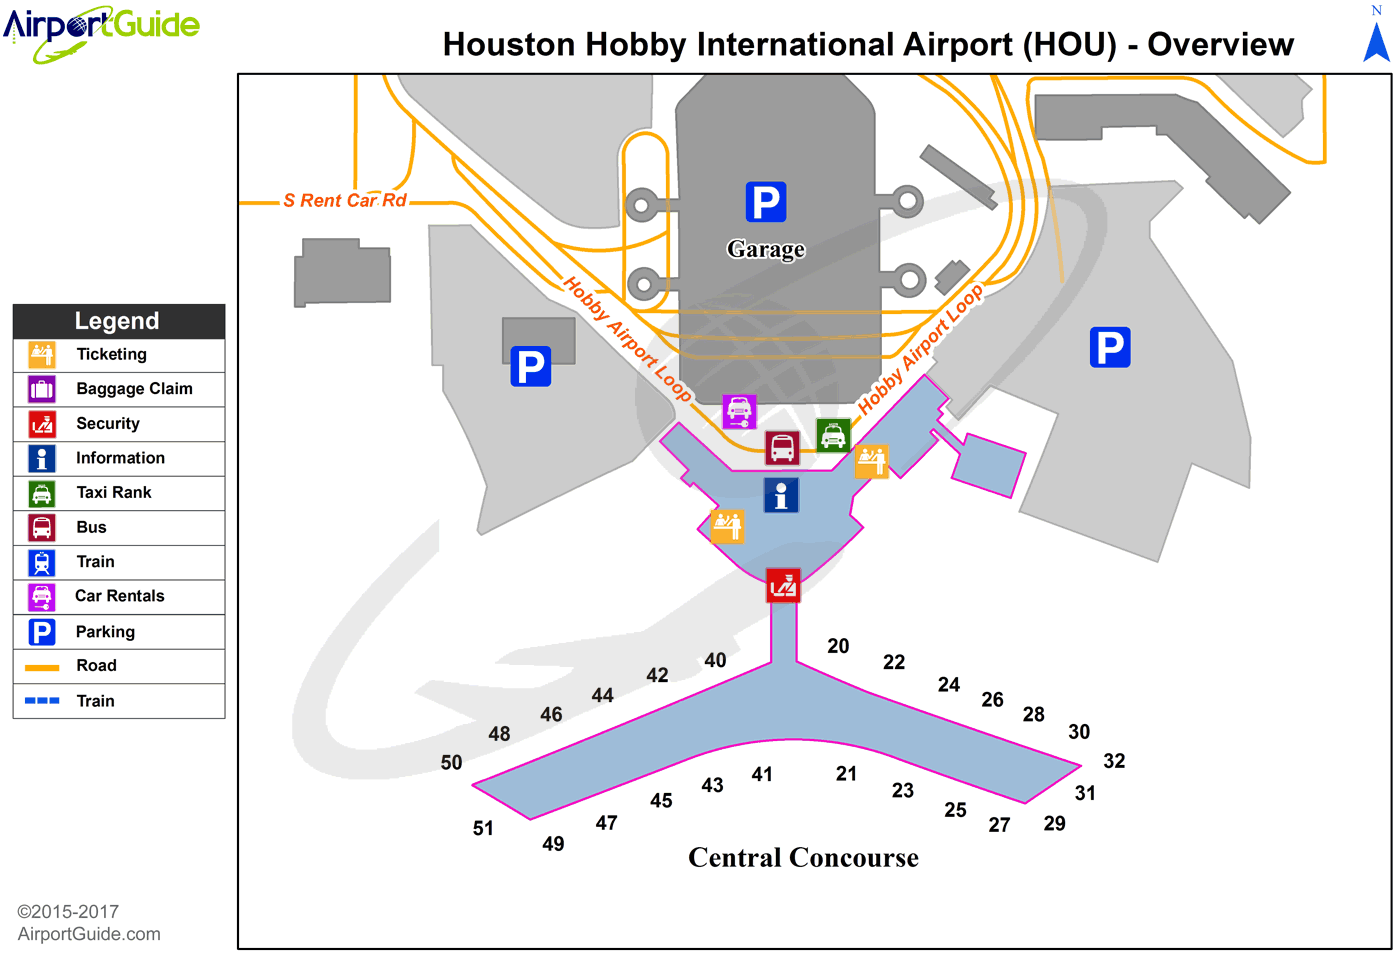 map of hobby airport houston tx Houston William P Hobby Hou Airport Terminal Map Overview map of hobby airport houston tx